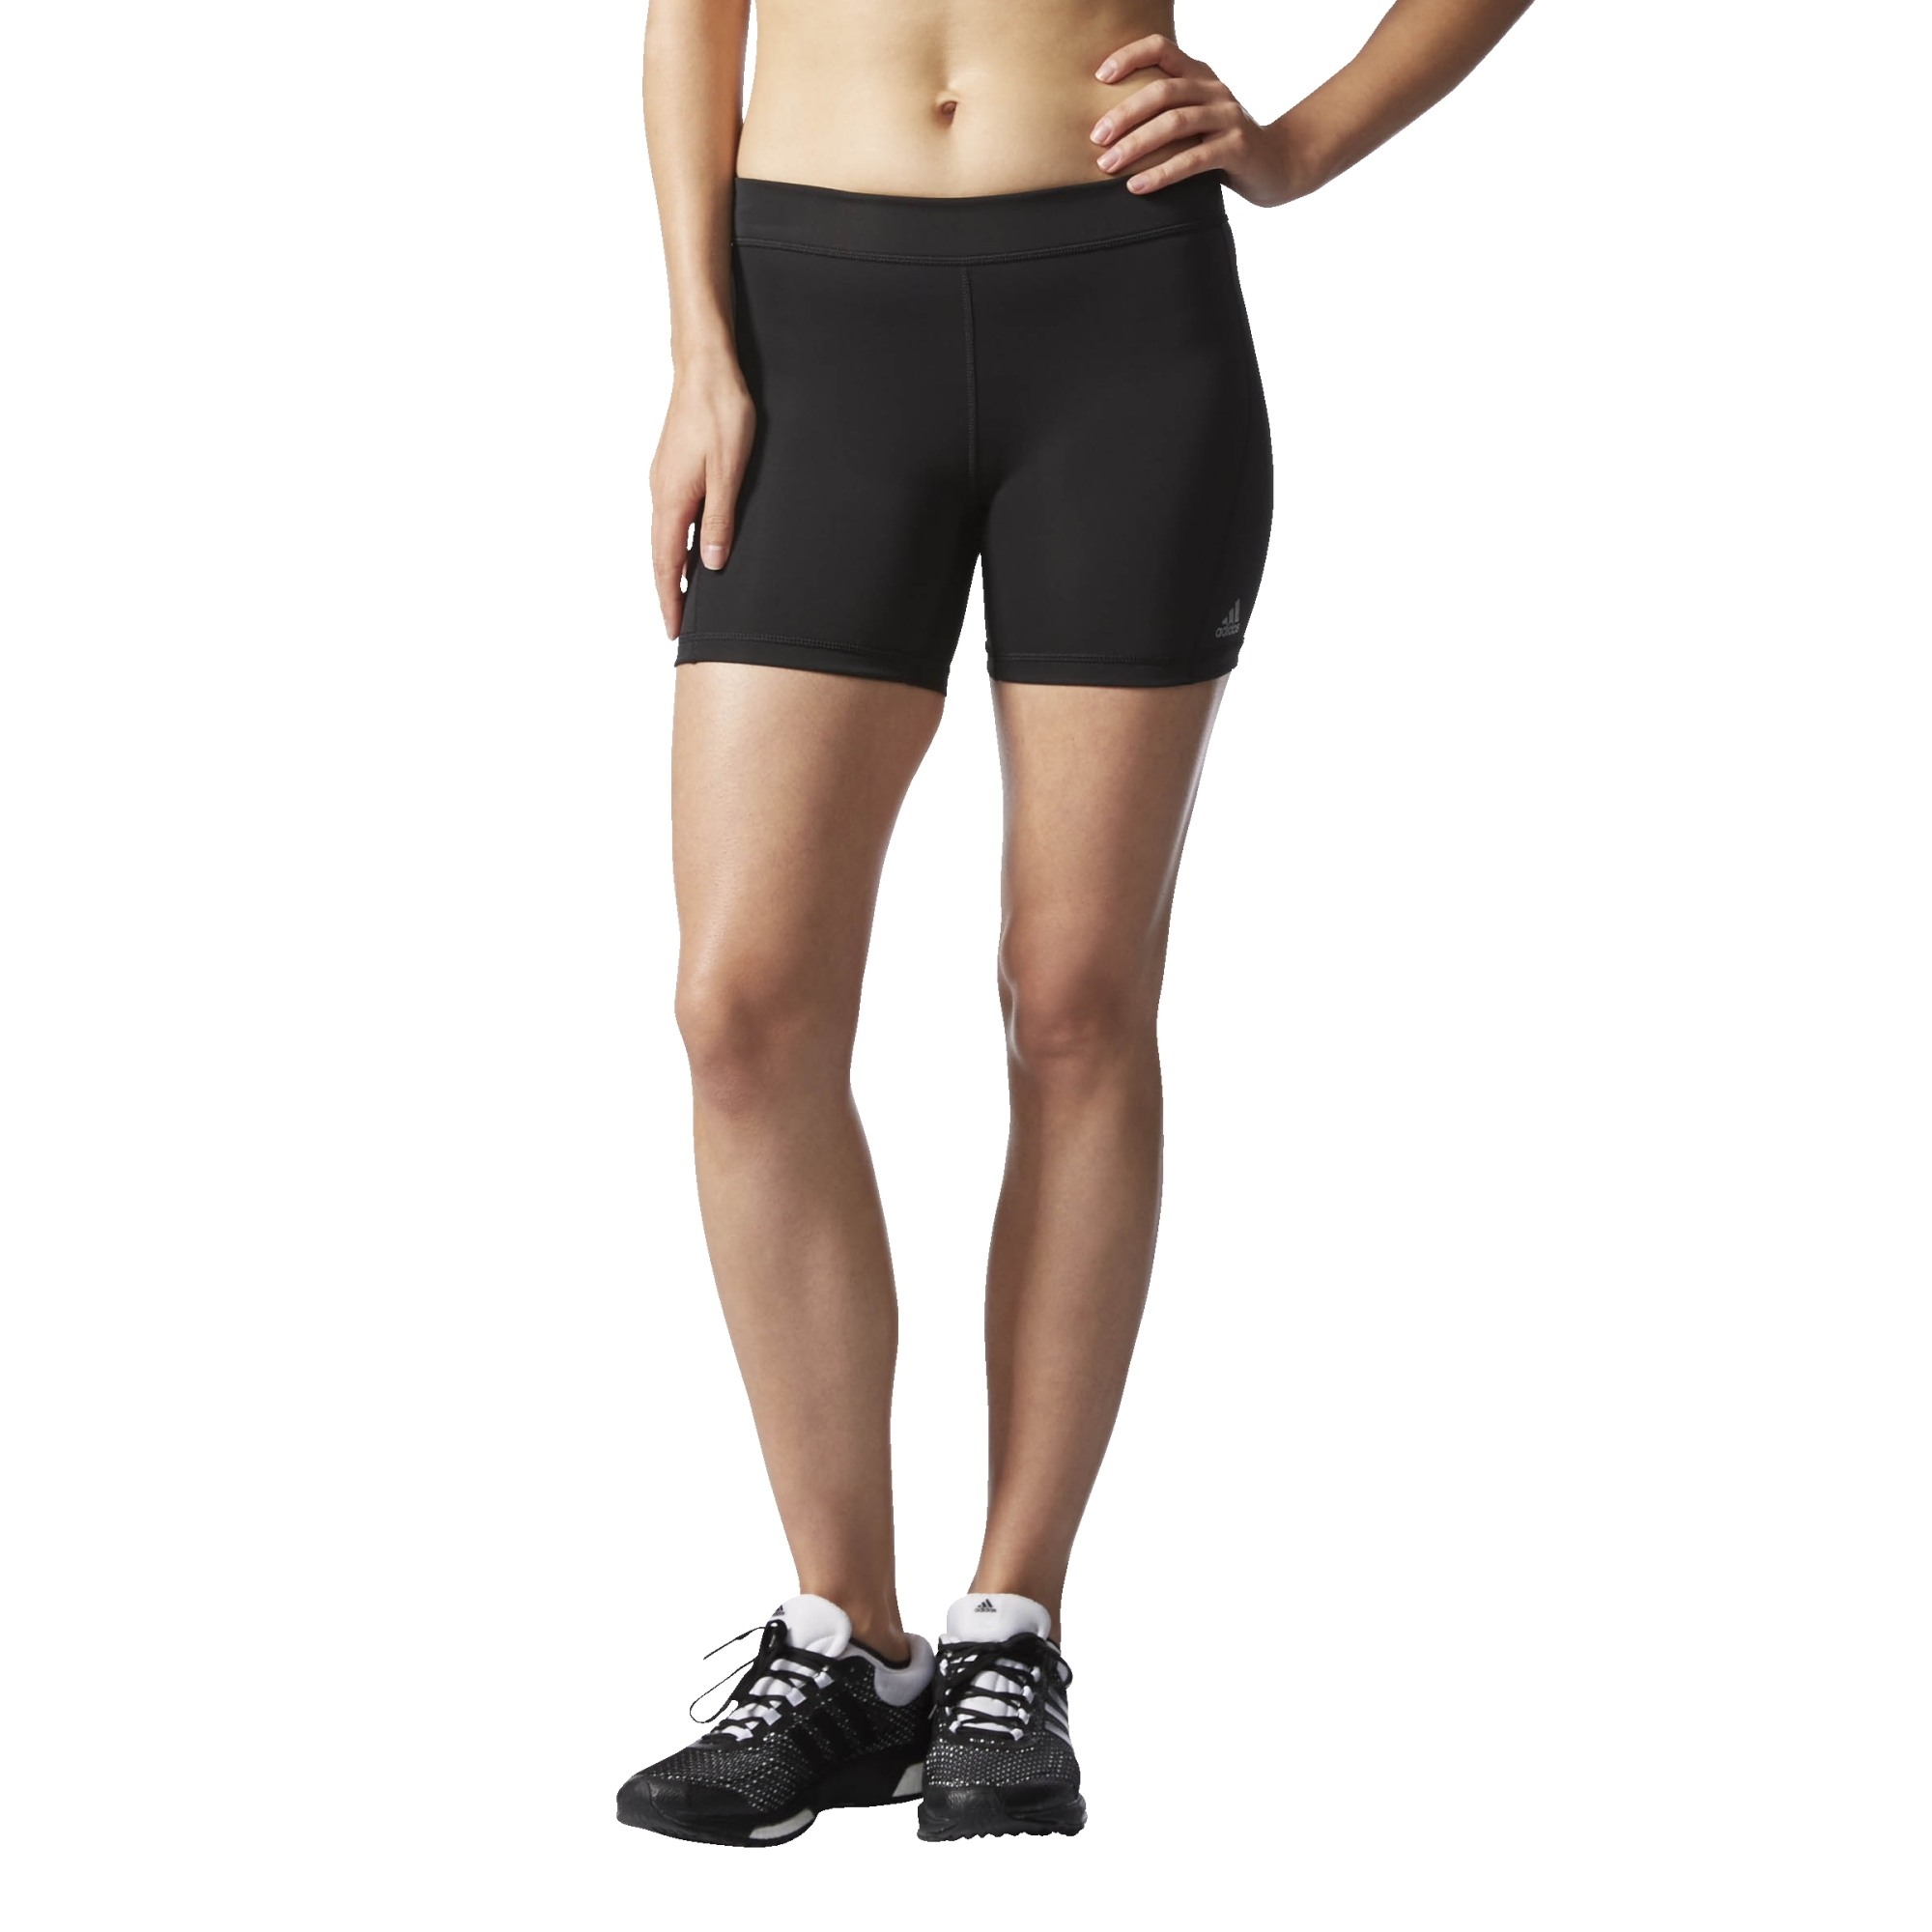 Wiggle   adidas Women's Techfit 5 Inch Short Tights (AW16